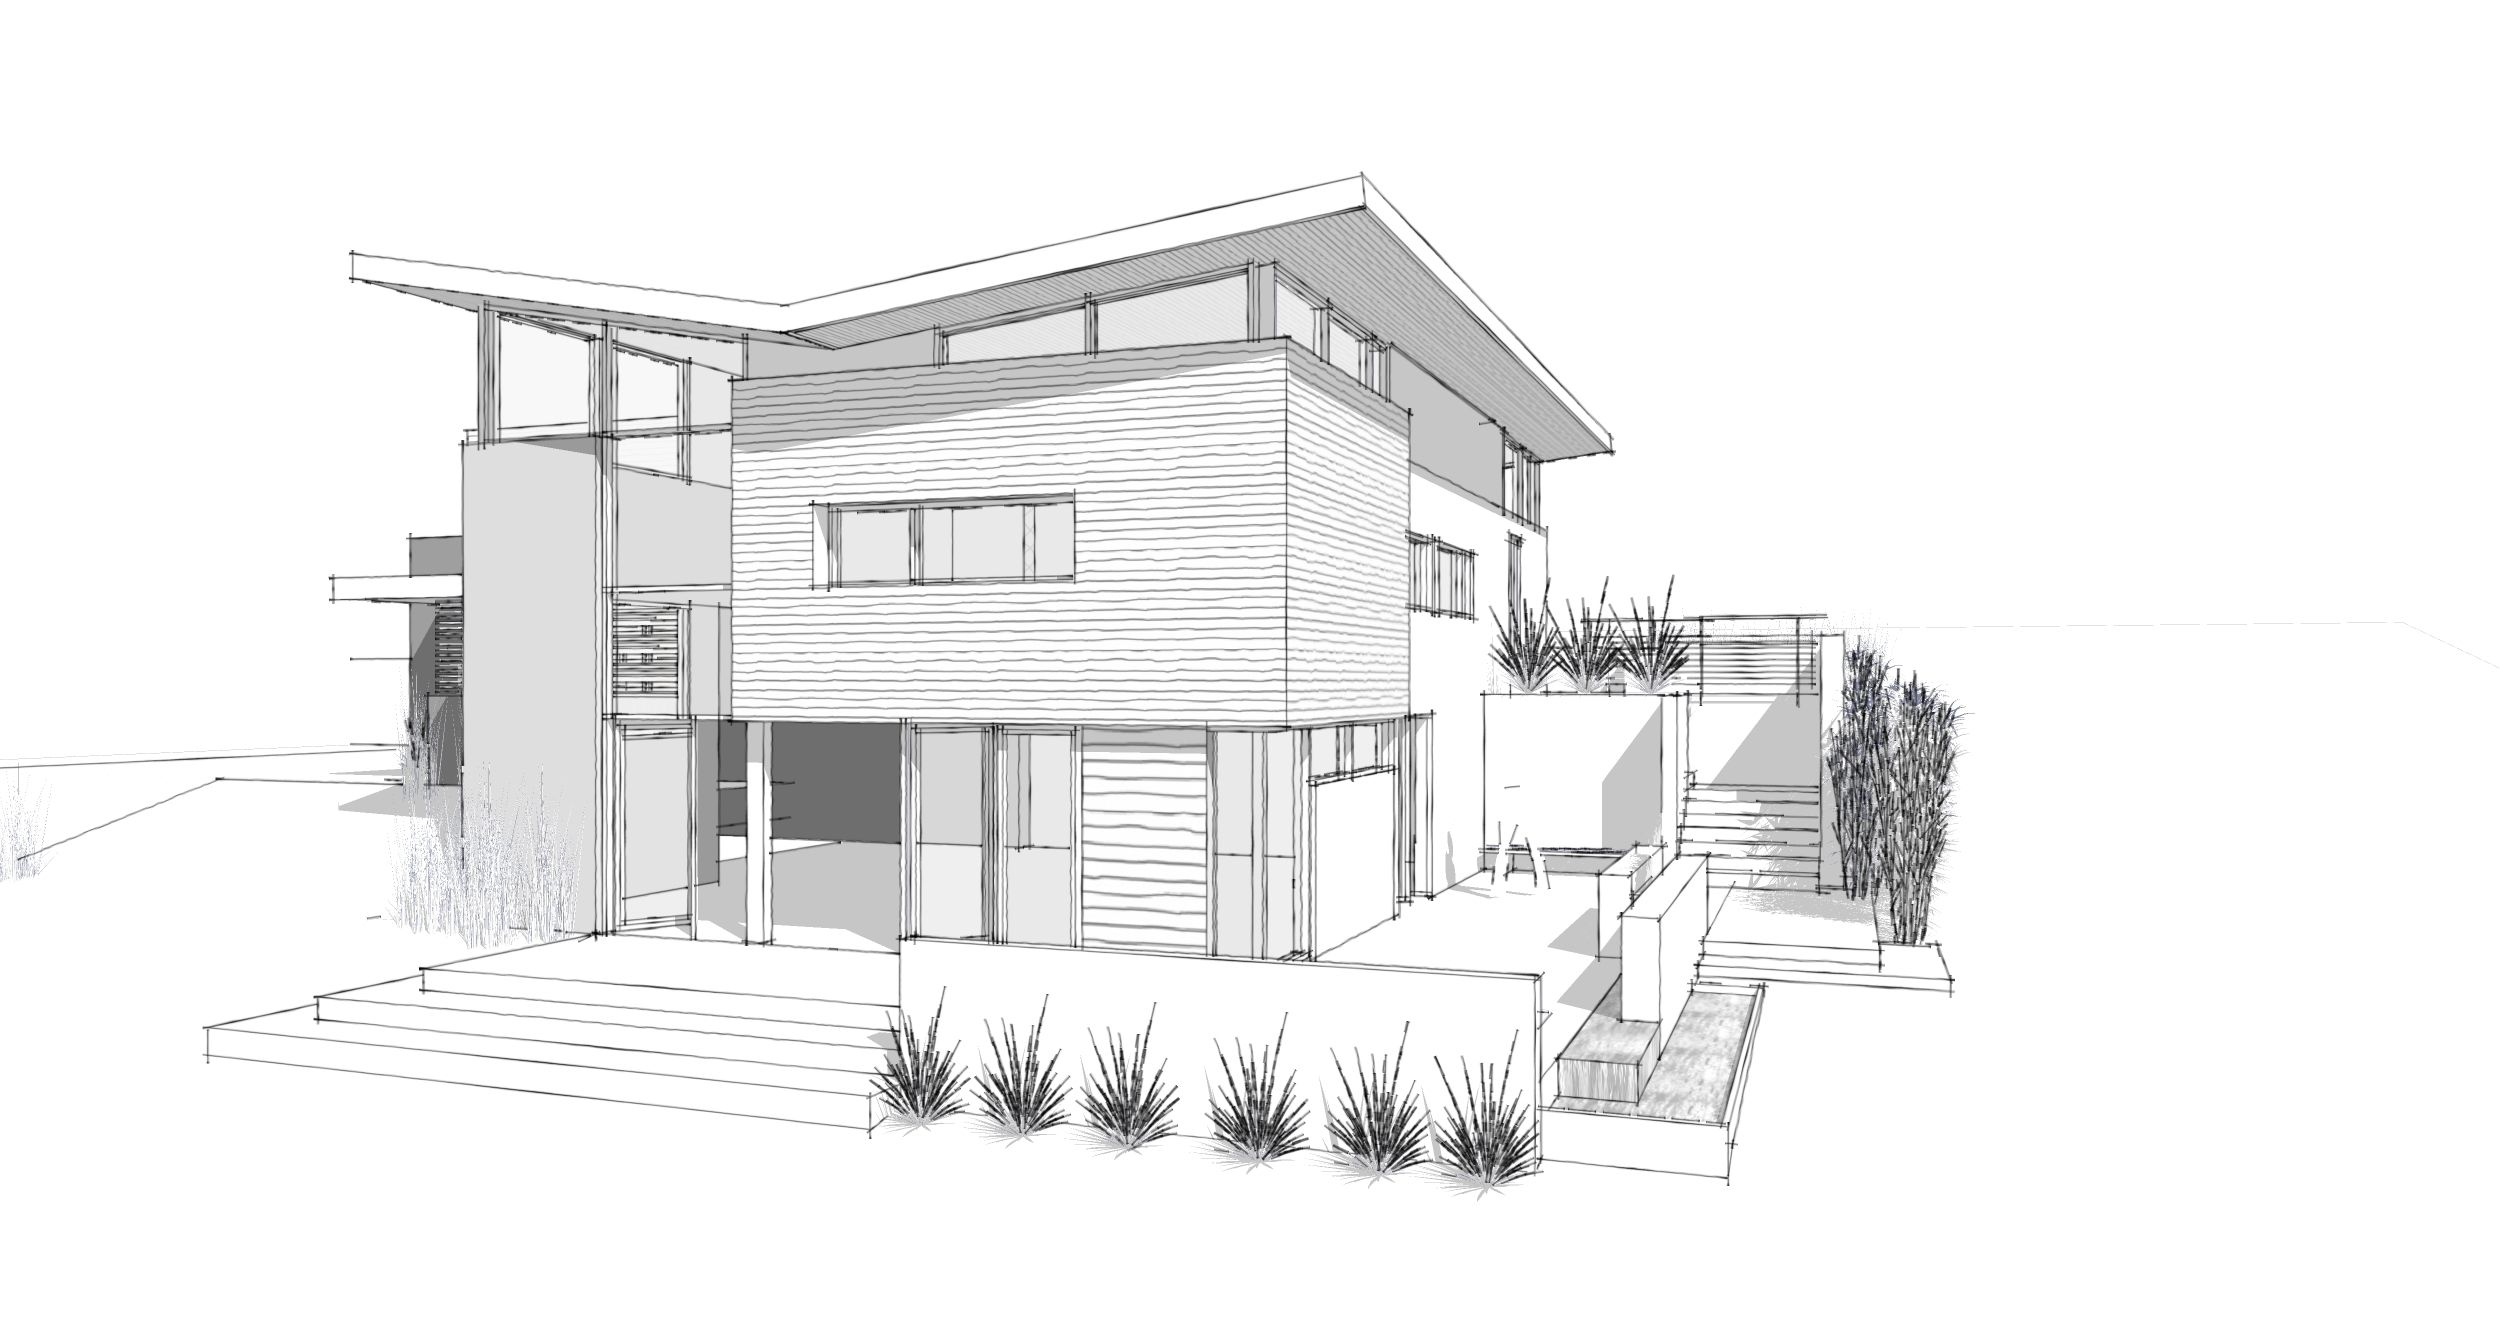 Modern home architecture sketches design ideas 13435 for House drawing easy